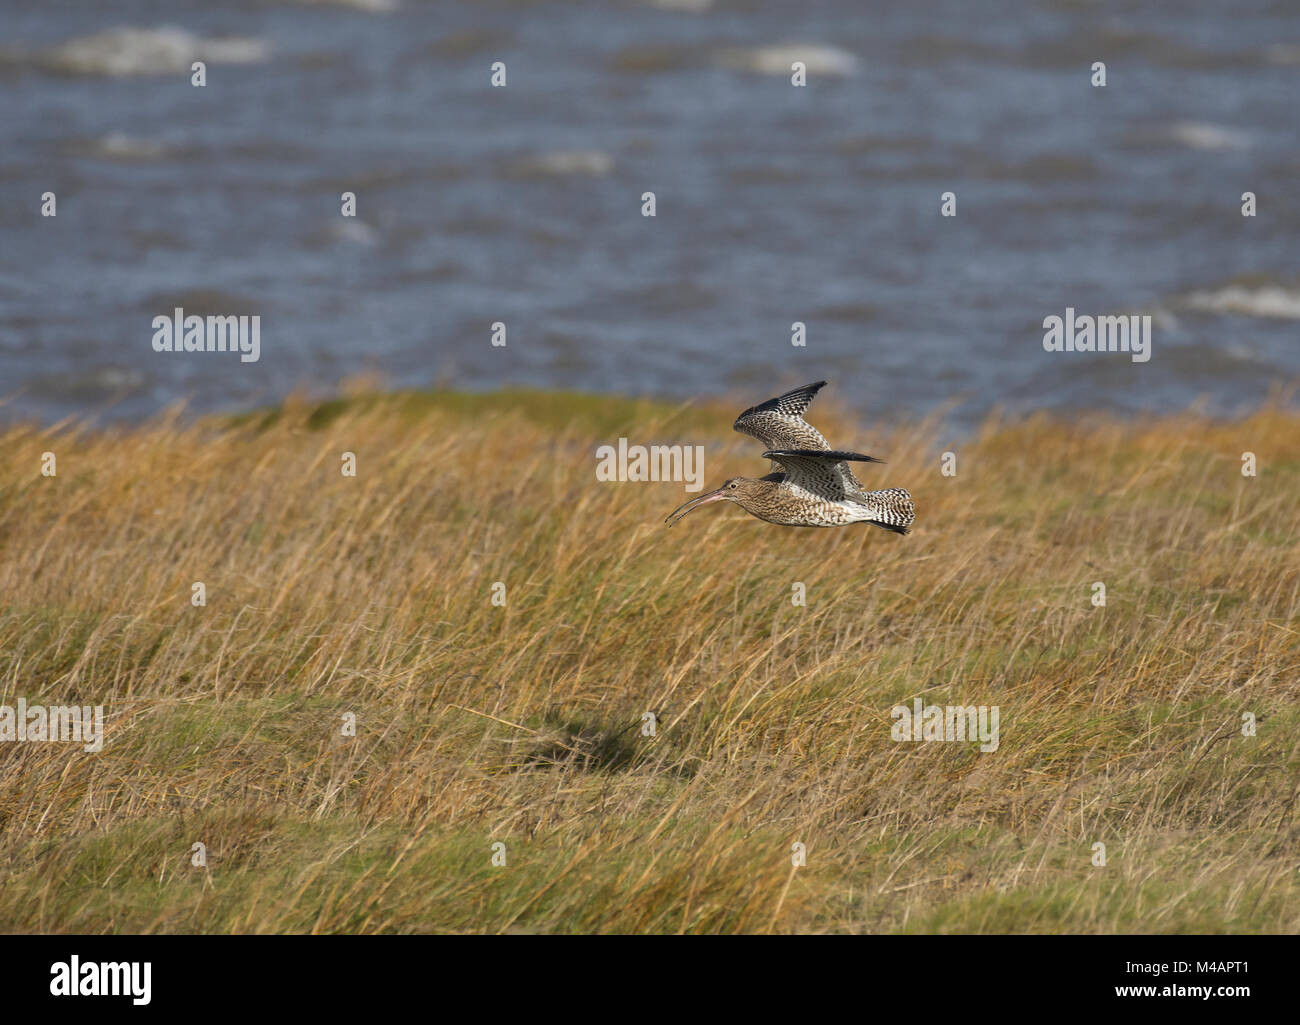 Curlew, Numenius arquata, in flight, Morecambe Bay, Lancashire, UK Stock Photo